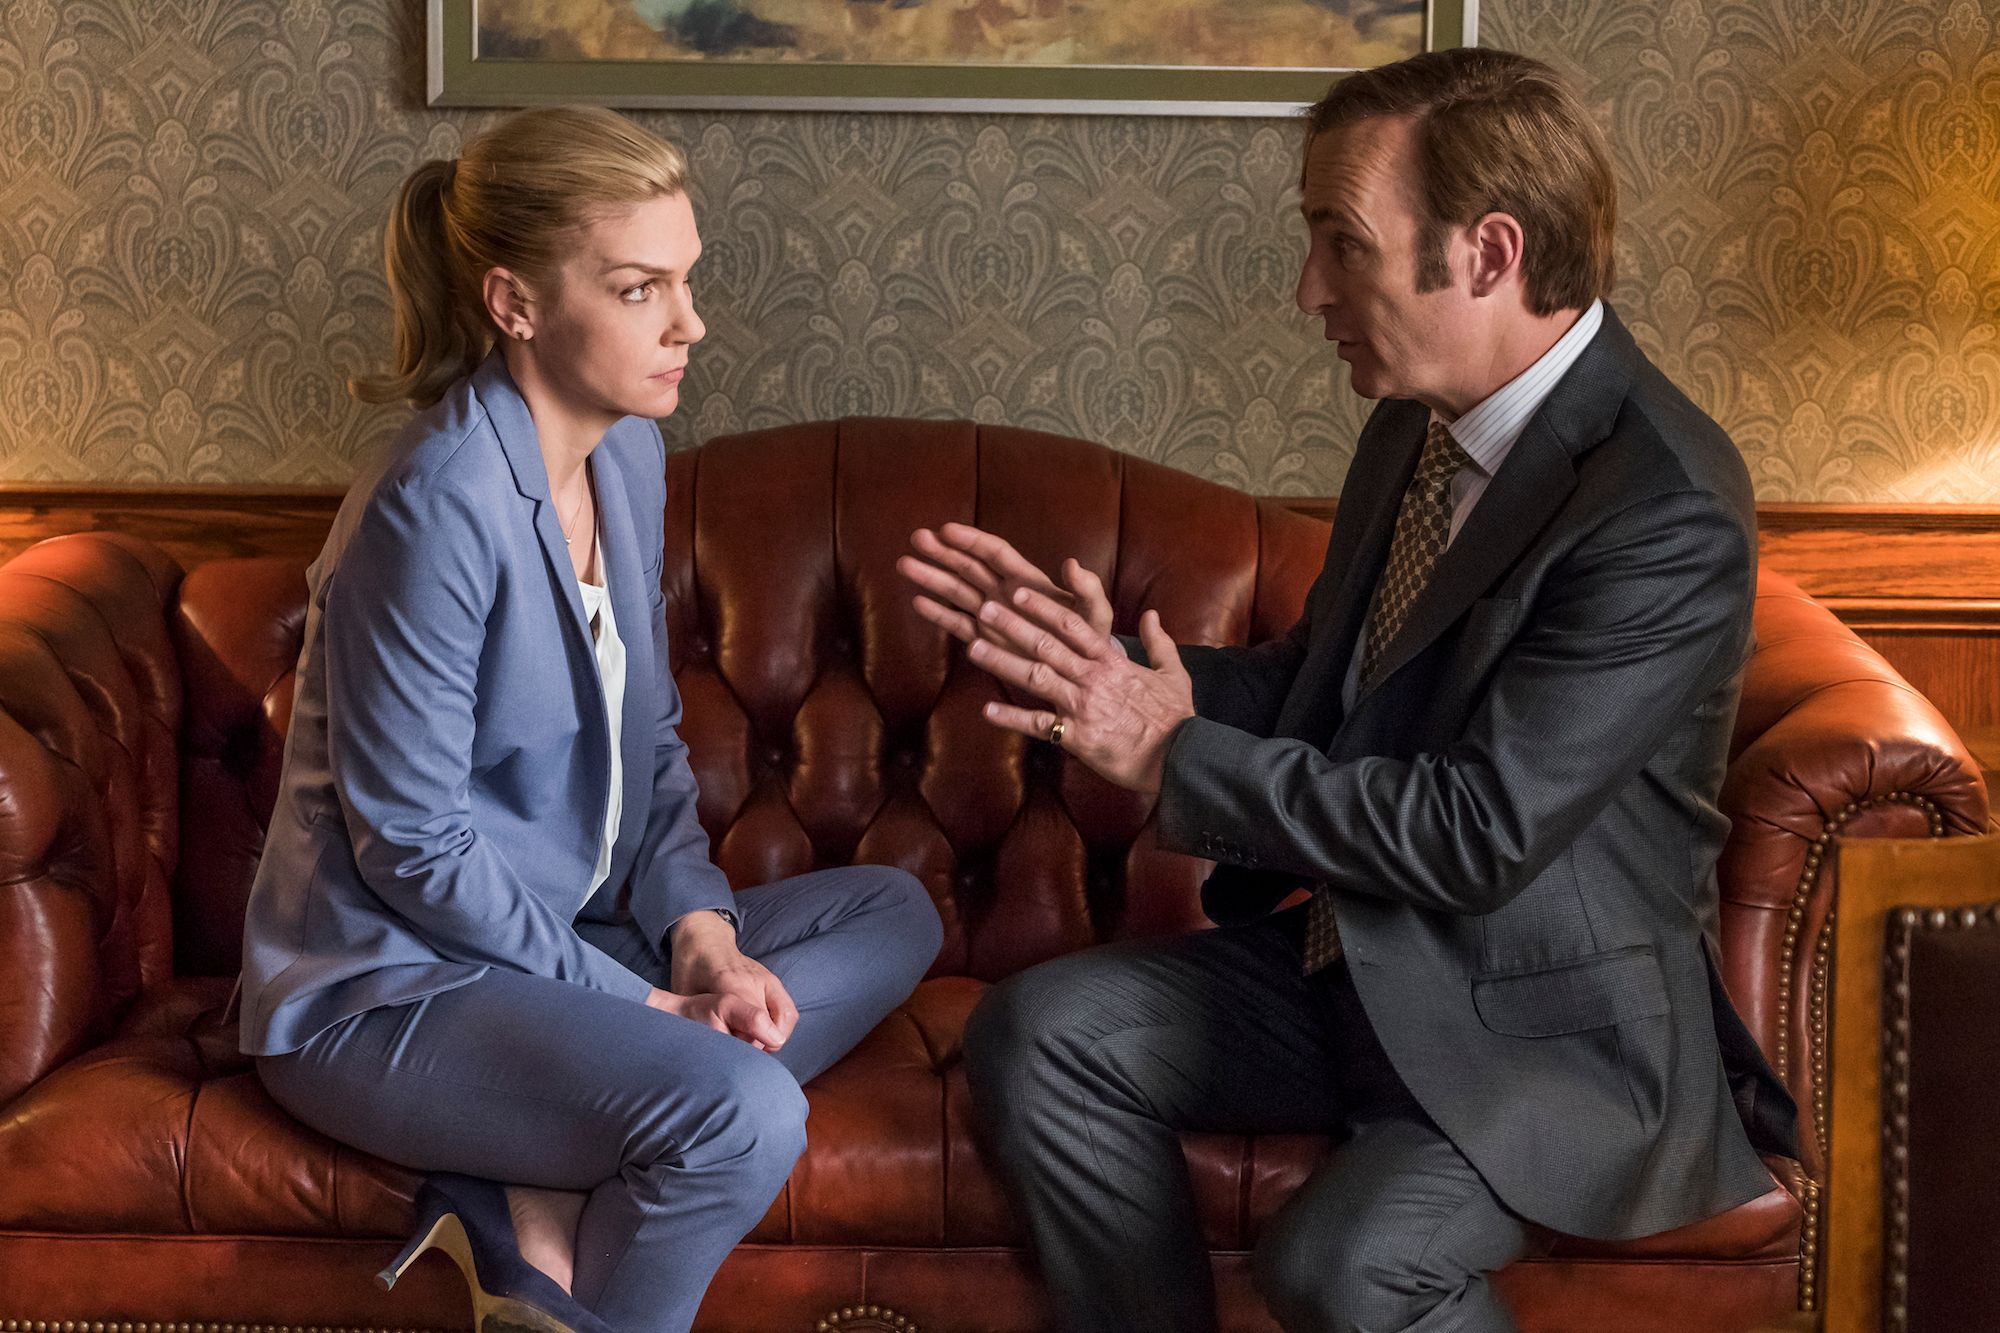 New 'Better Call Saul' Season 4 Images Show Jimmy Doing Plenty of Splainin'